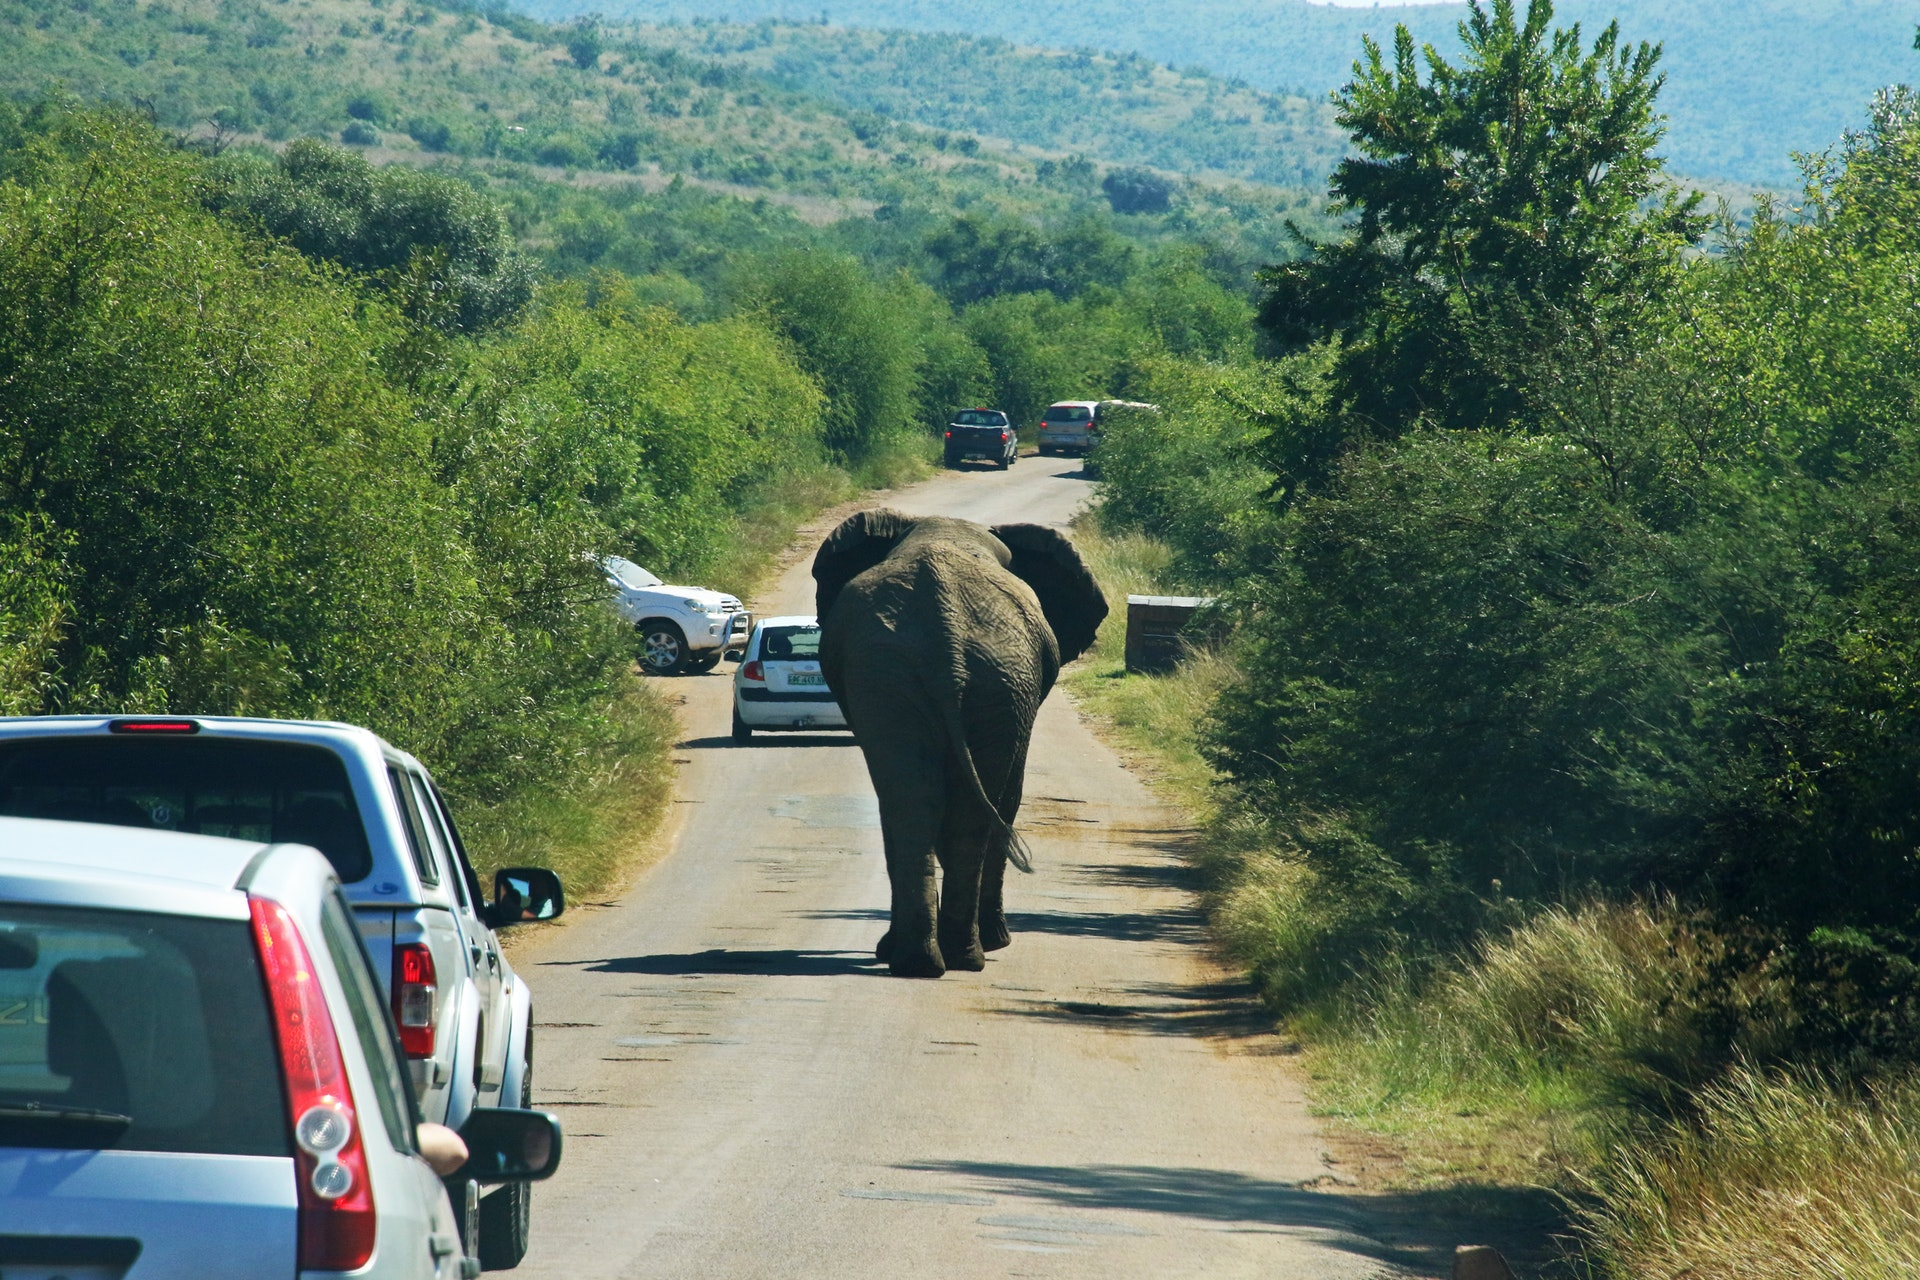 IoT and animals in the road